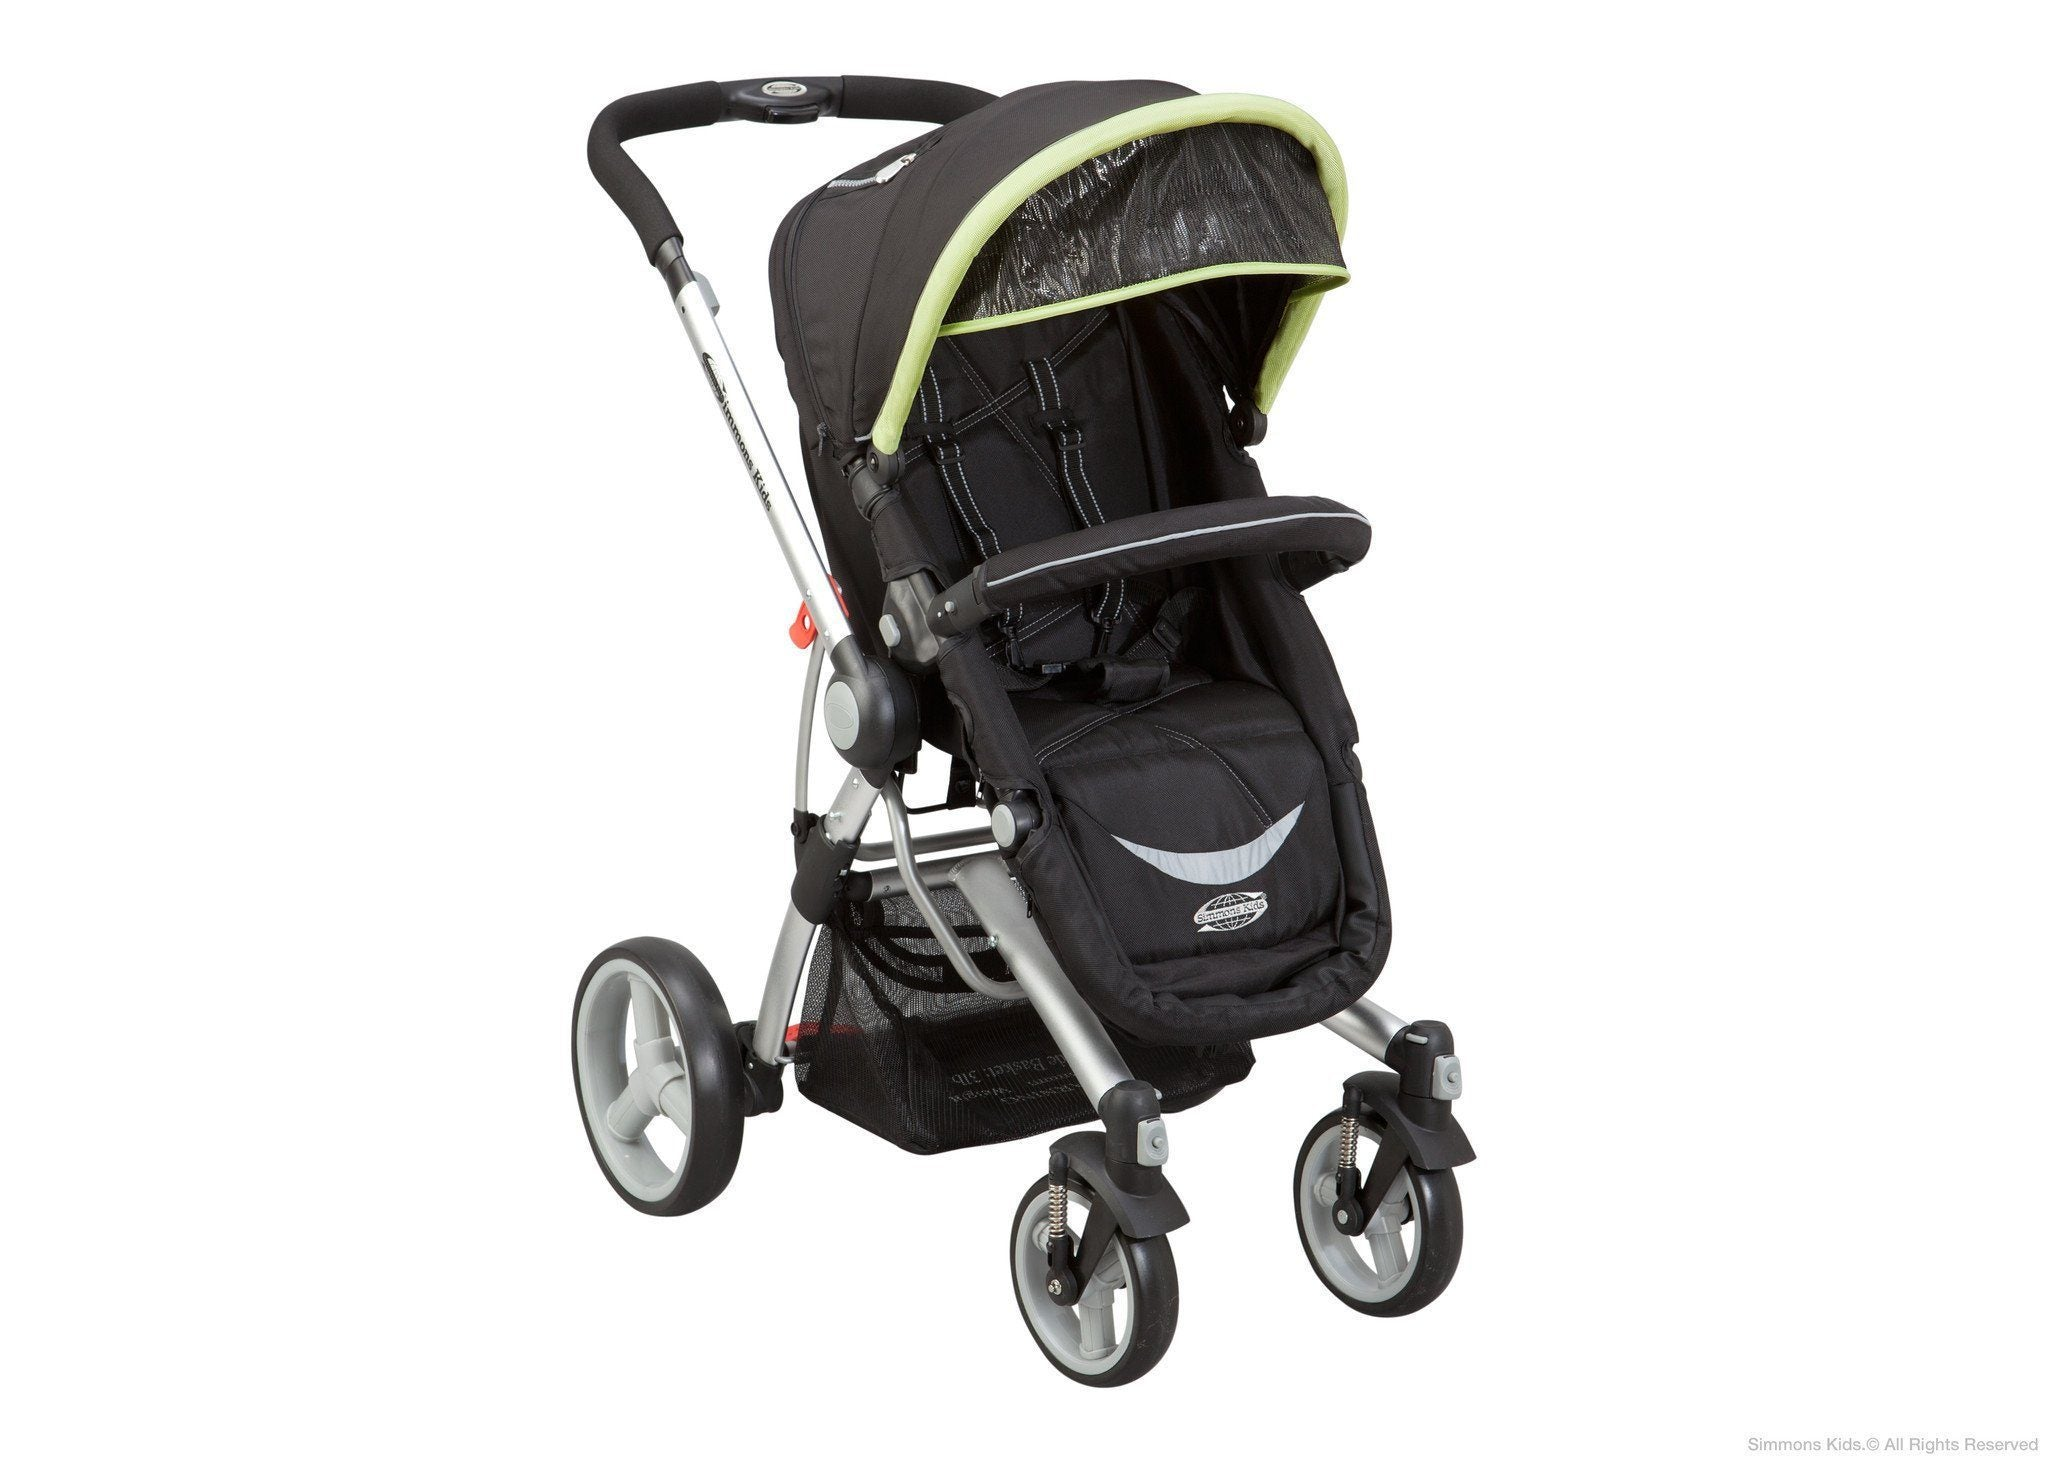 Simmons Kids Black with Green Trim (013) Comfort Tech Tour Buggy Stroller, Right View a1a